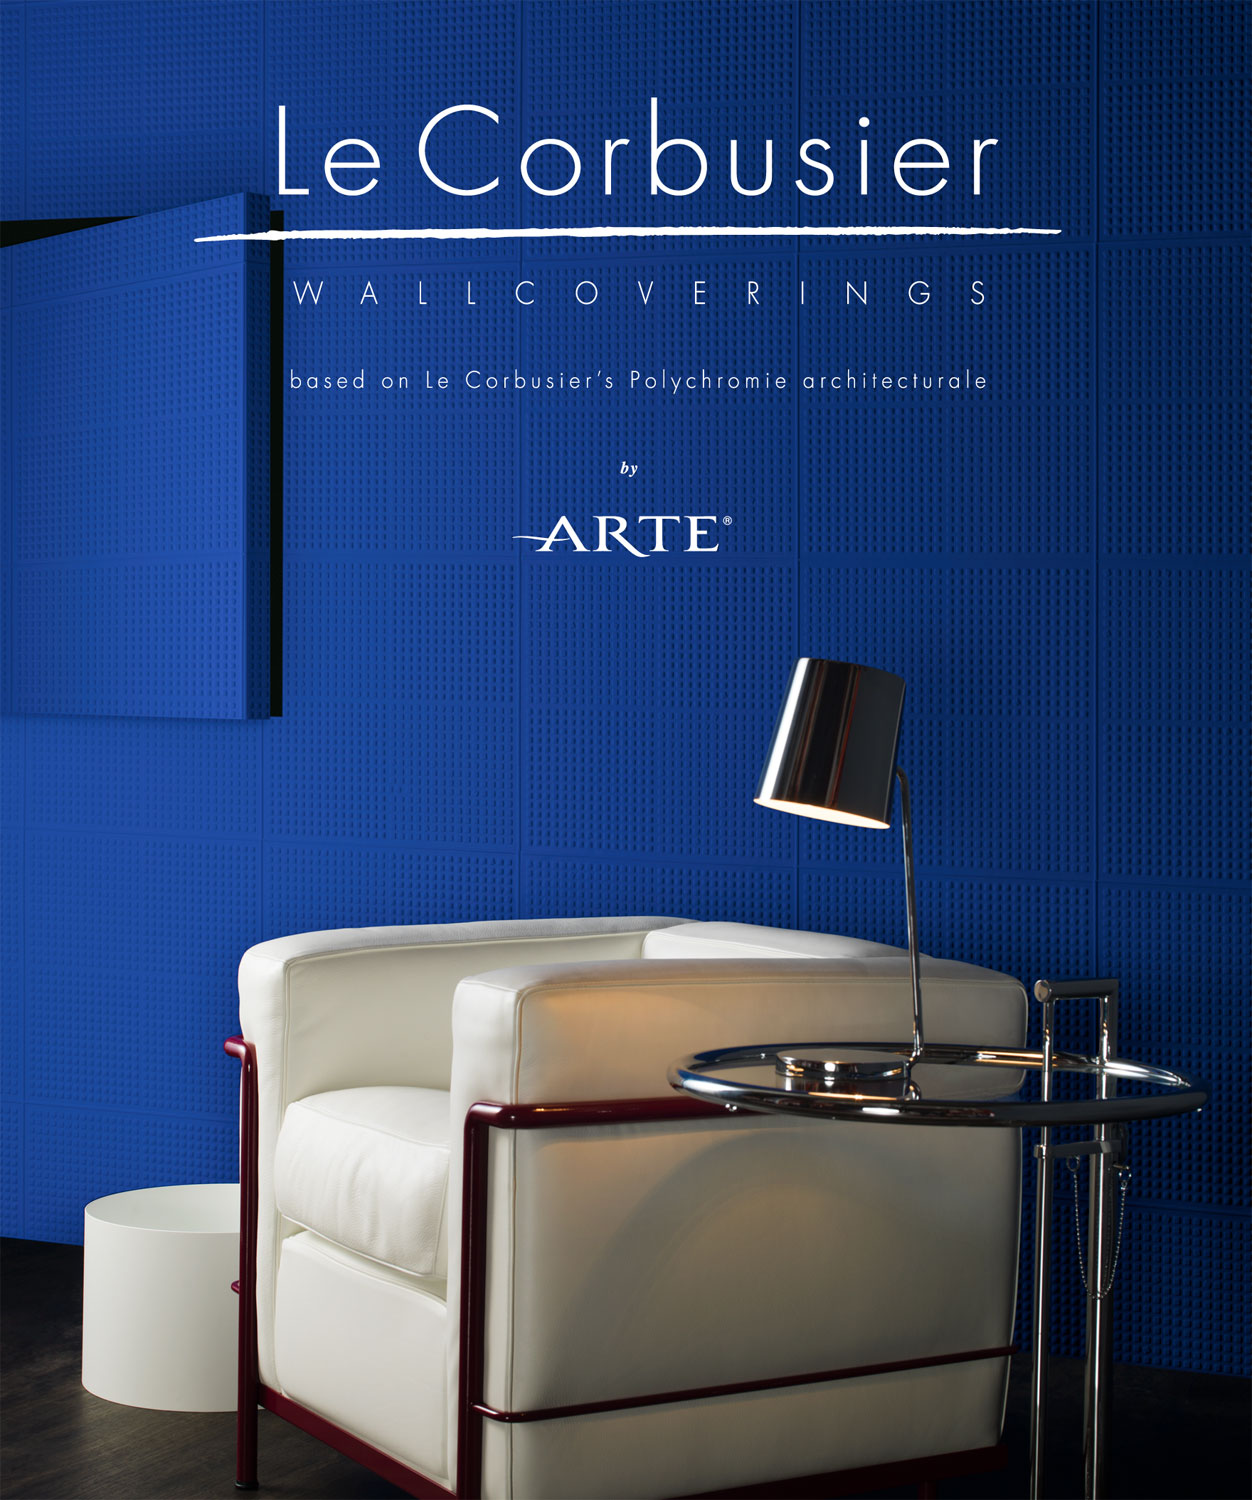 arte le corbusier squares page 67 20583. Black Bedroom Furniture Sets. Home Design Ideas